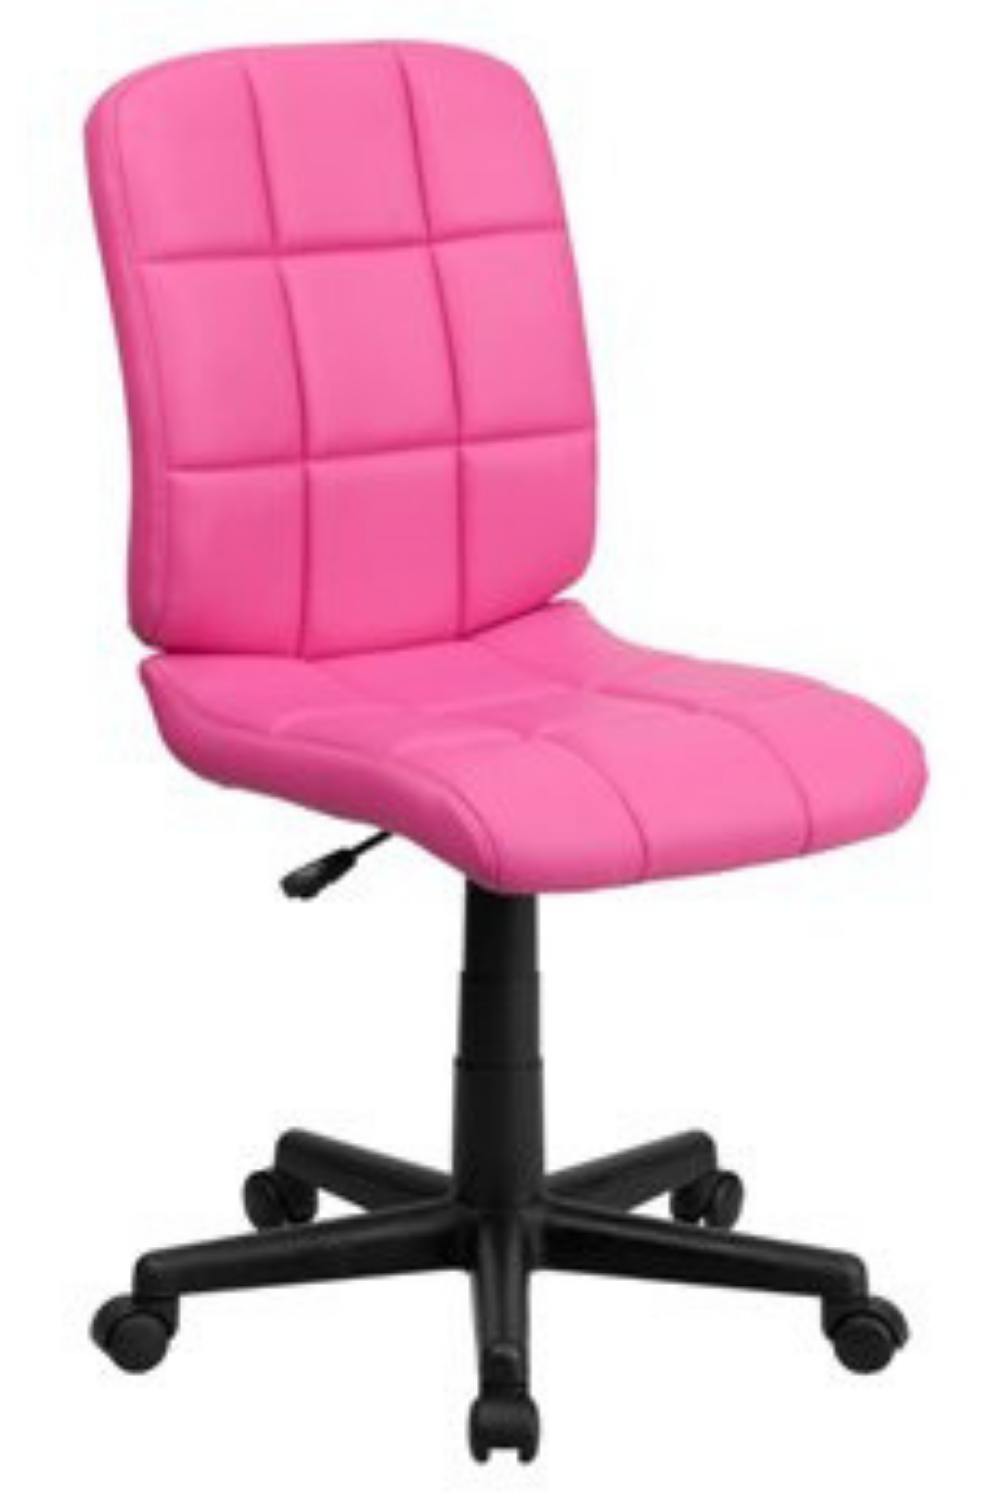 Round Up The Best Pink Desk Chair Pink Desk Chair Flash Furniture Task Chair